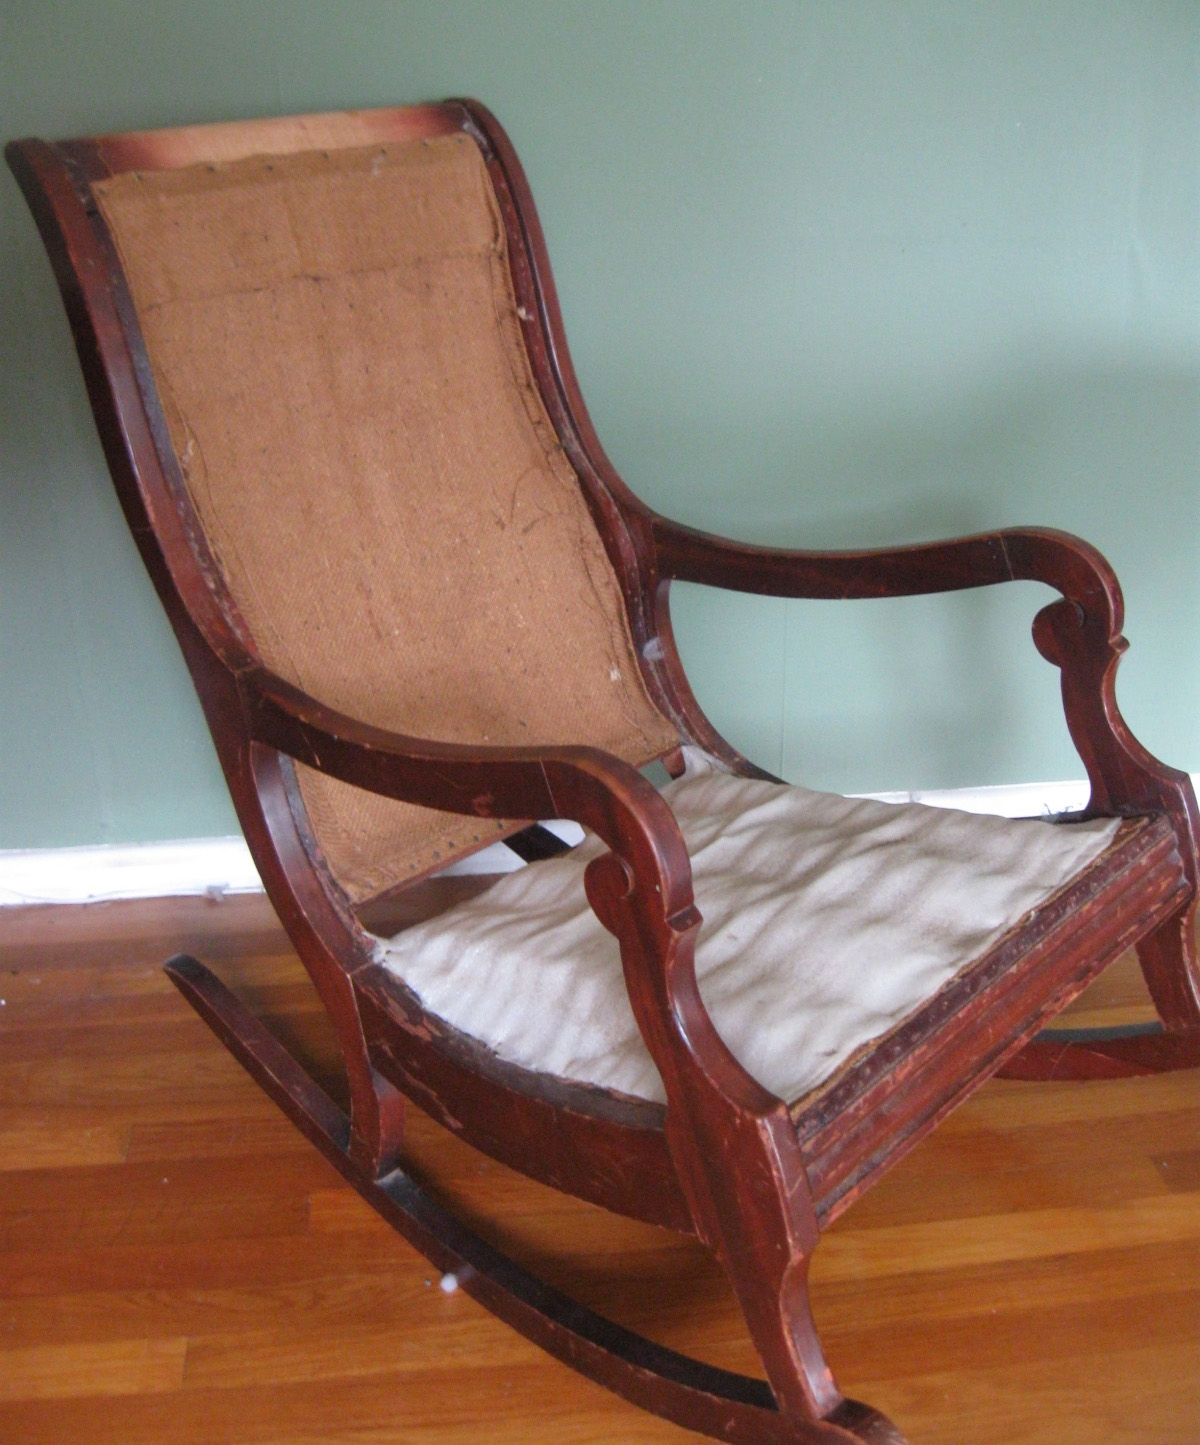 2017 Upholster & Paint A Rocking Chair, Part 1 – Prodigal Pieces For Rocking Chairs With Springs (View 14 of 15)